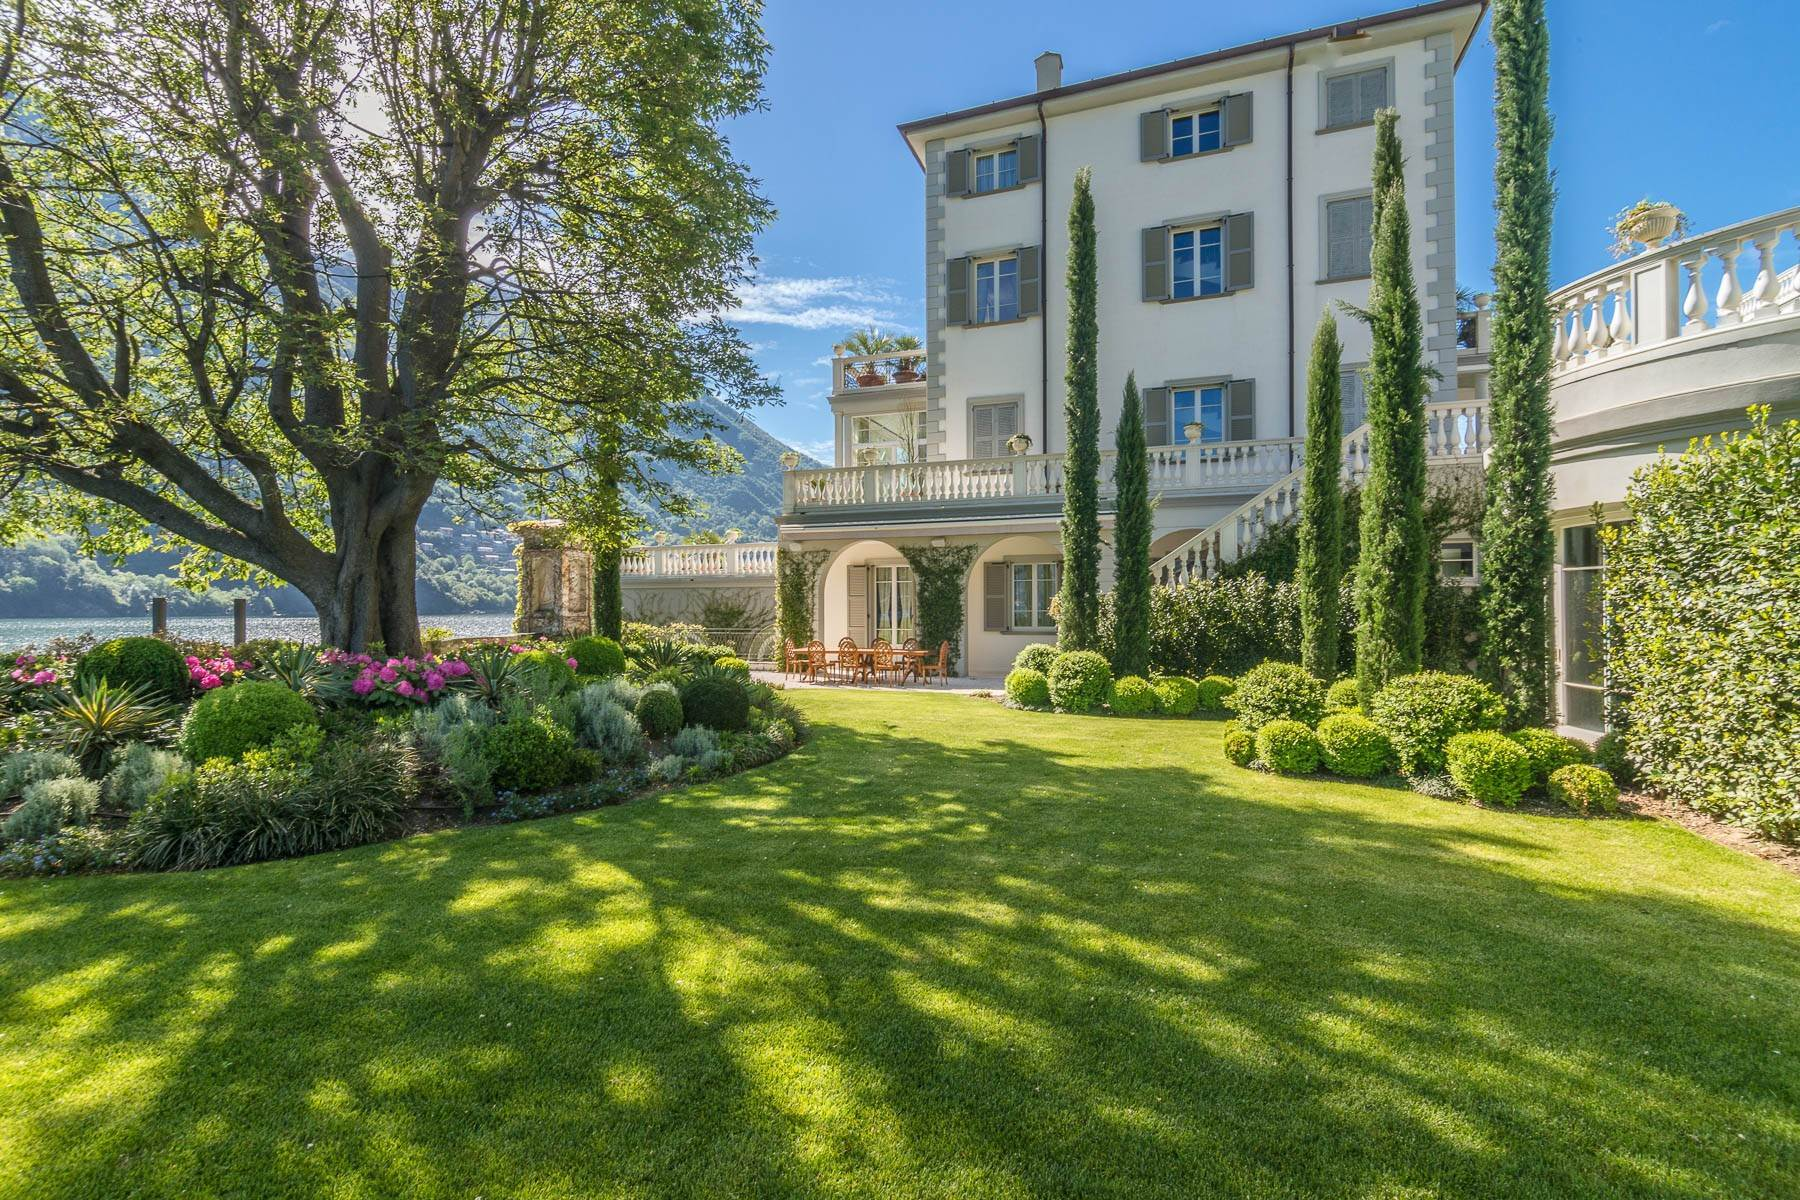 10. Other Residential Homes at Laglio, Como, Italy